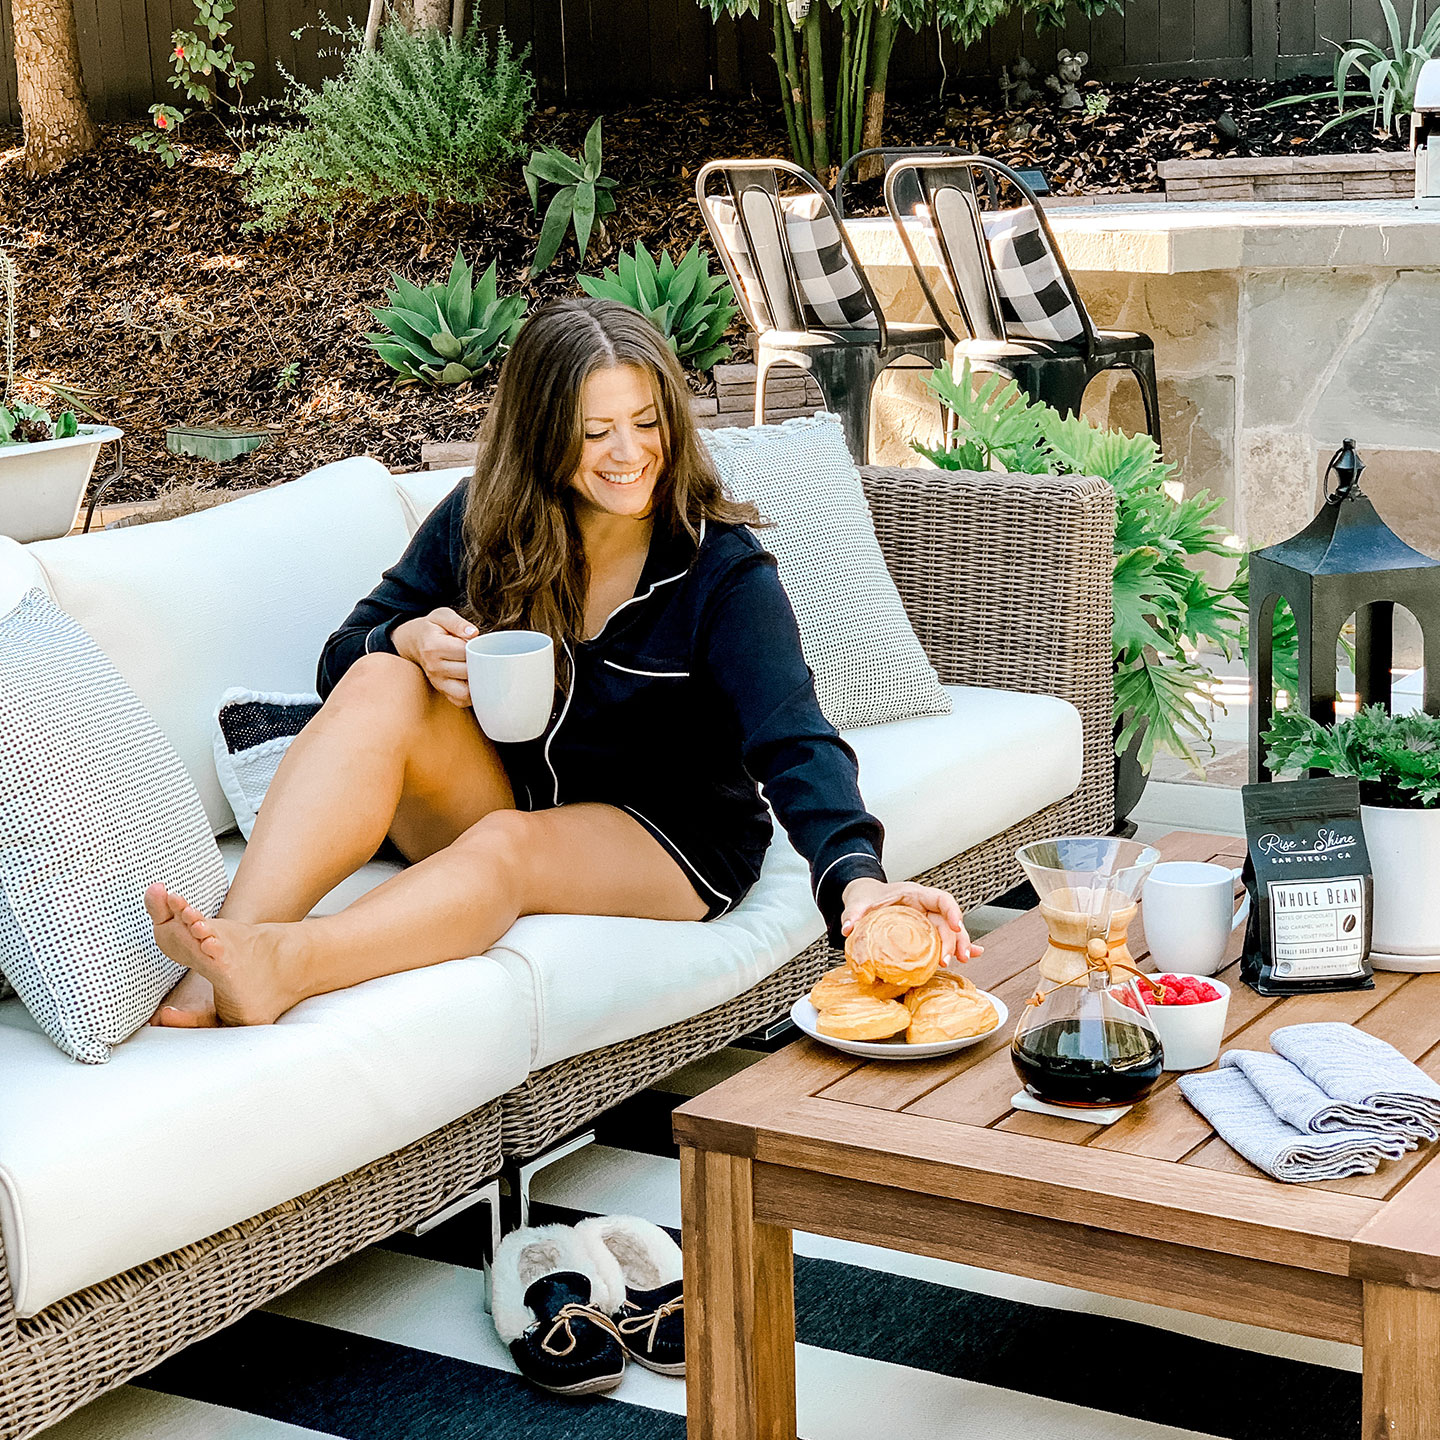 Woman enjoying breakfast and coffee out on her garden furniture